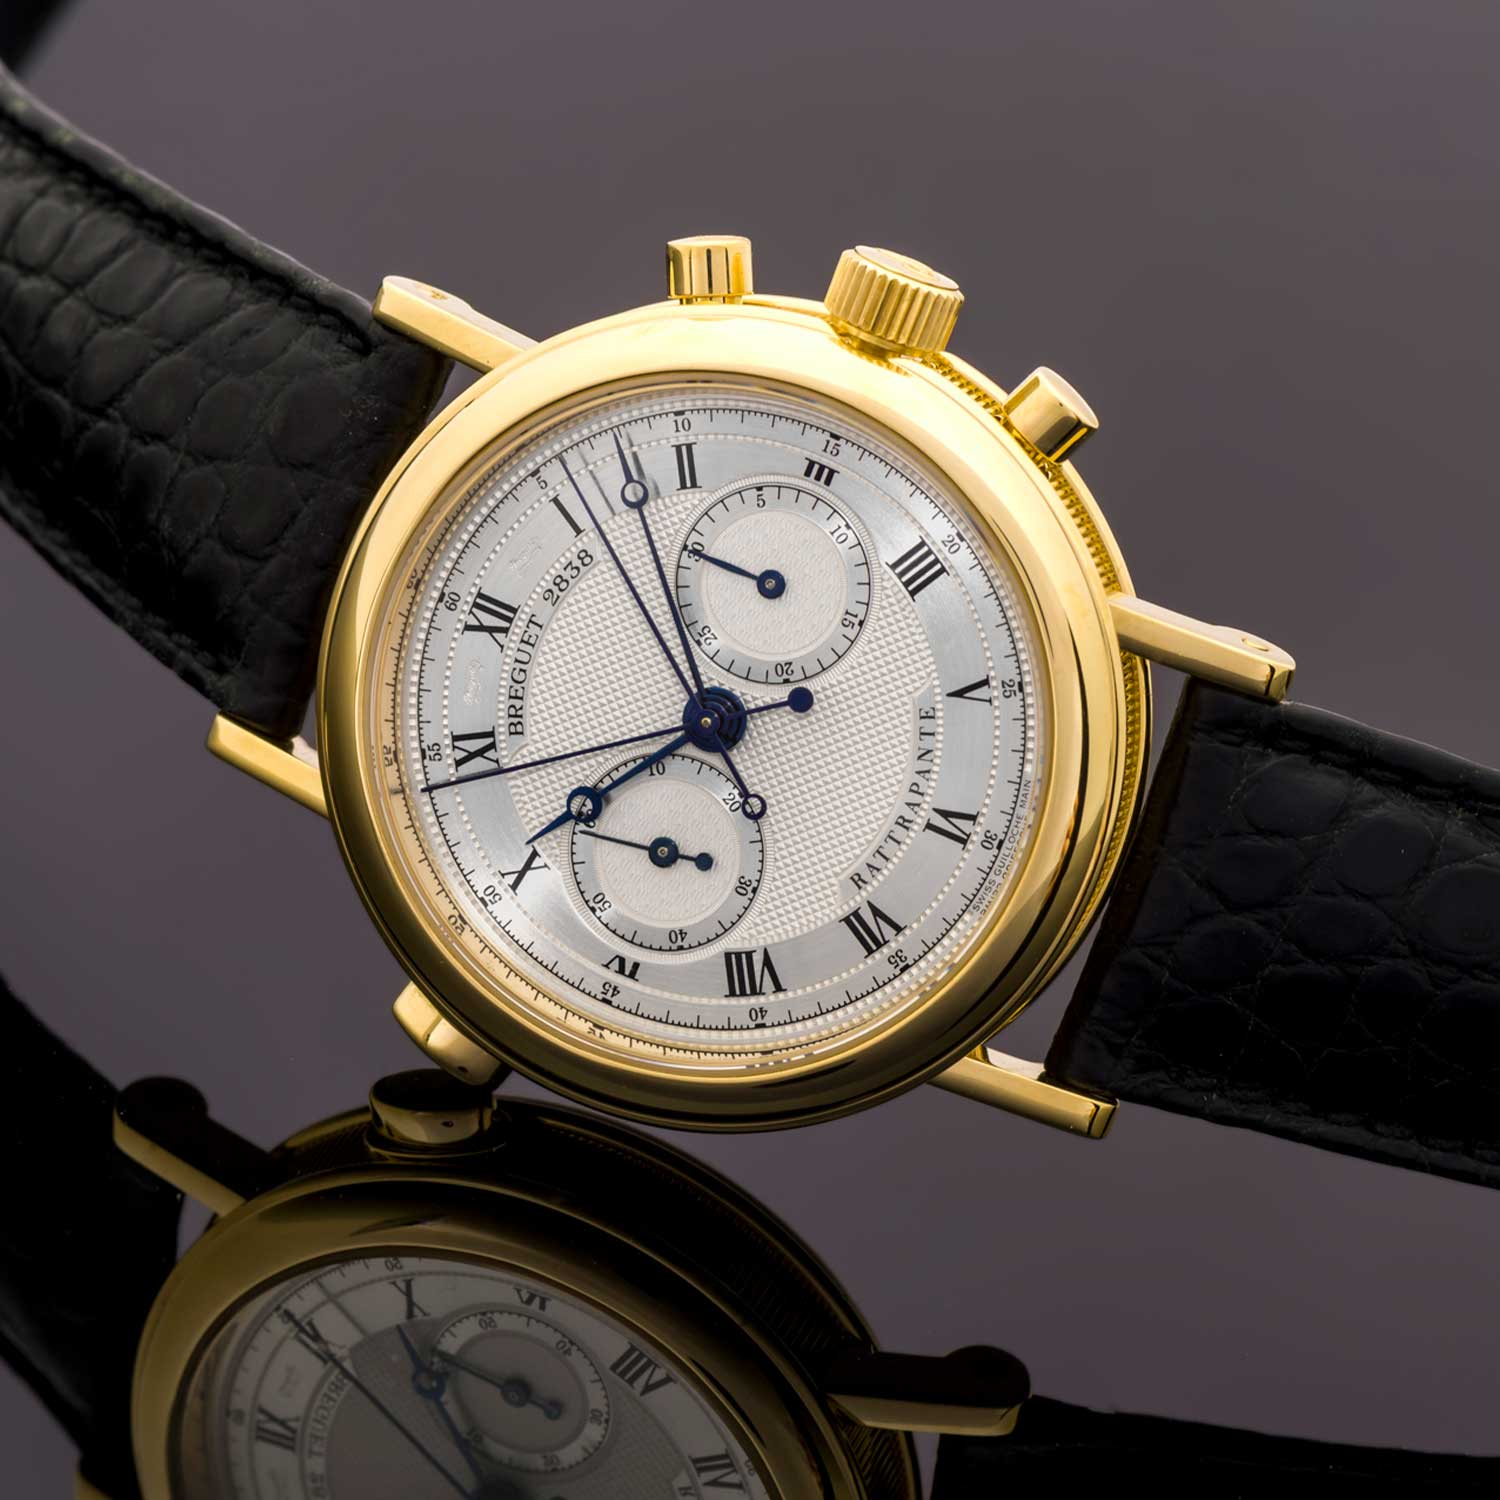 Breguet 3947 Split-Seconds Chronograph is particularly easy to identify with its oval shaped split pusher positioned at 10 o'clock of the case of the watch; the timepiece was powered by the Cal. 533N (Image: catalog.antiquorum.swiss)